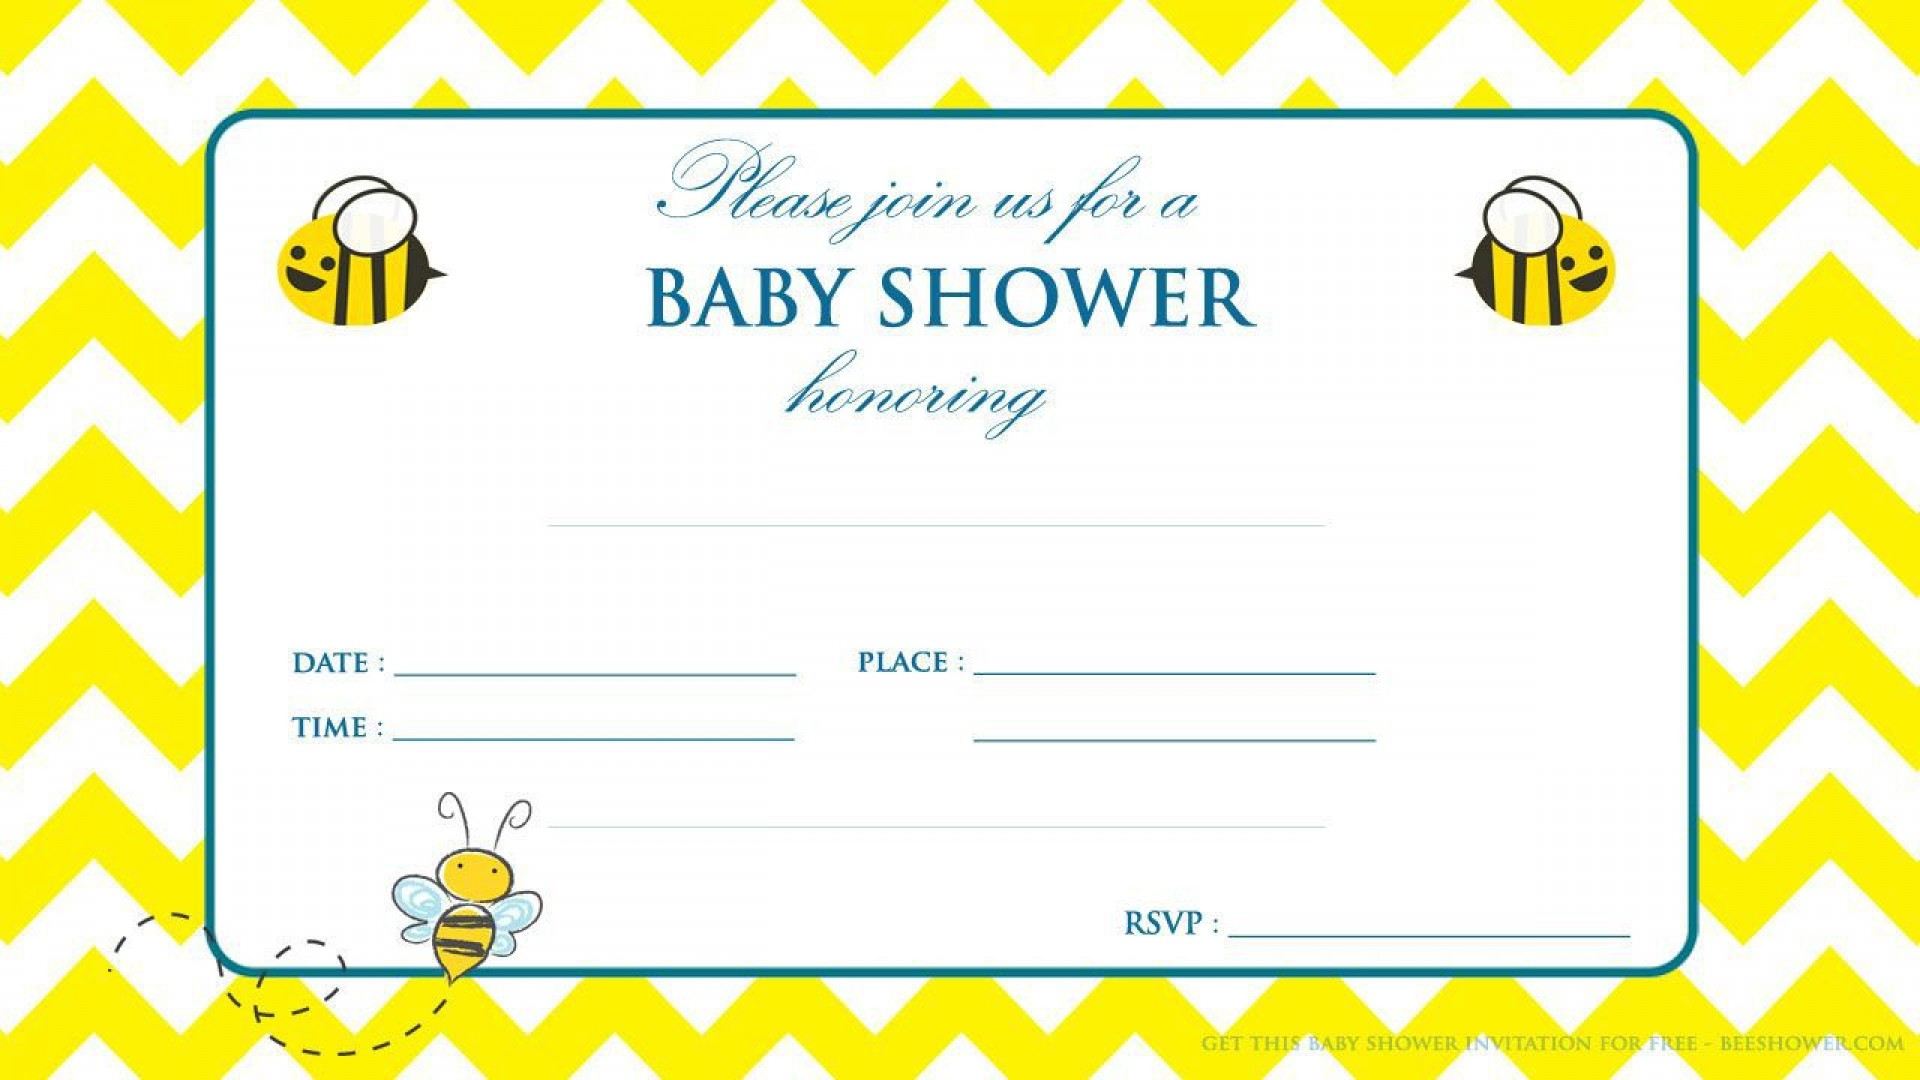 001 Magnificent Baby Shower Invitation Template Word Picture  Office Wording Sample Work Download1920